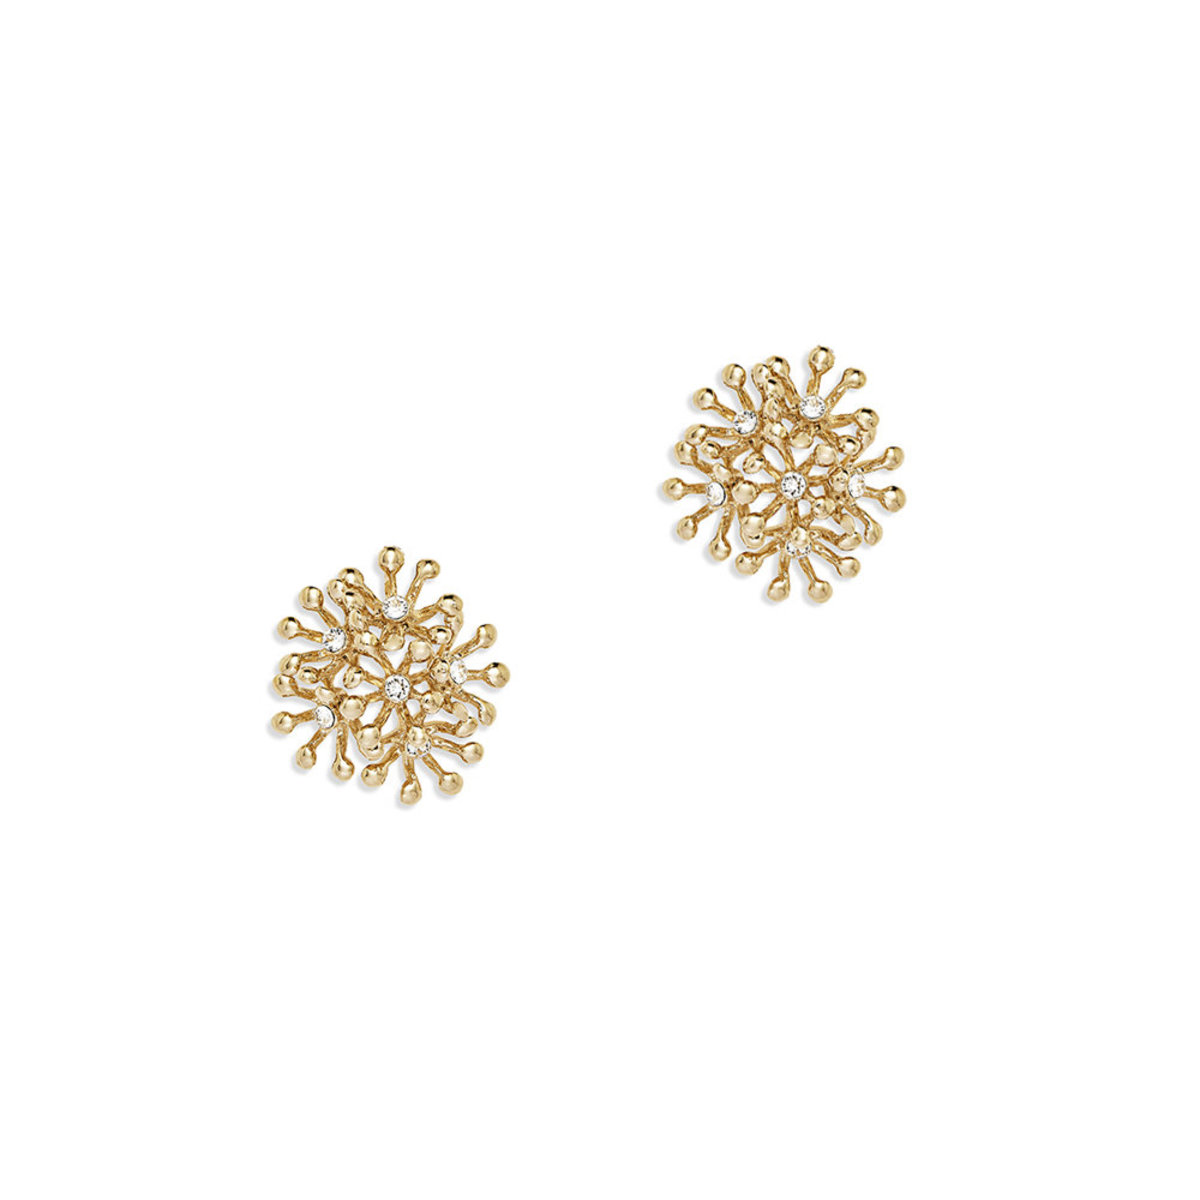 Brillia: gold plating, Swarovski crystal pierced earrings